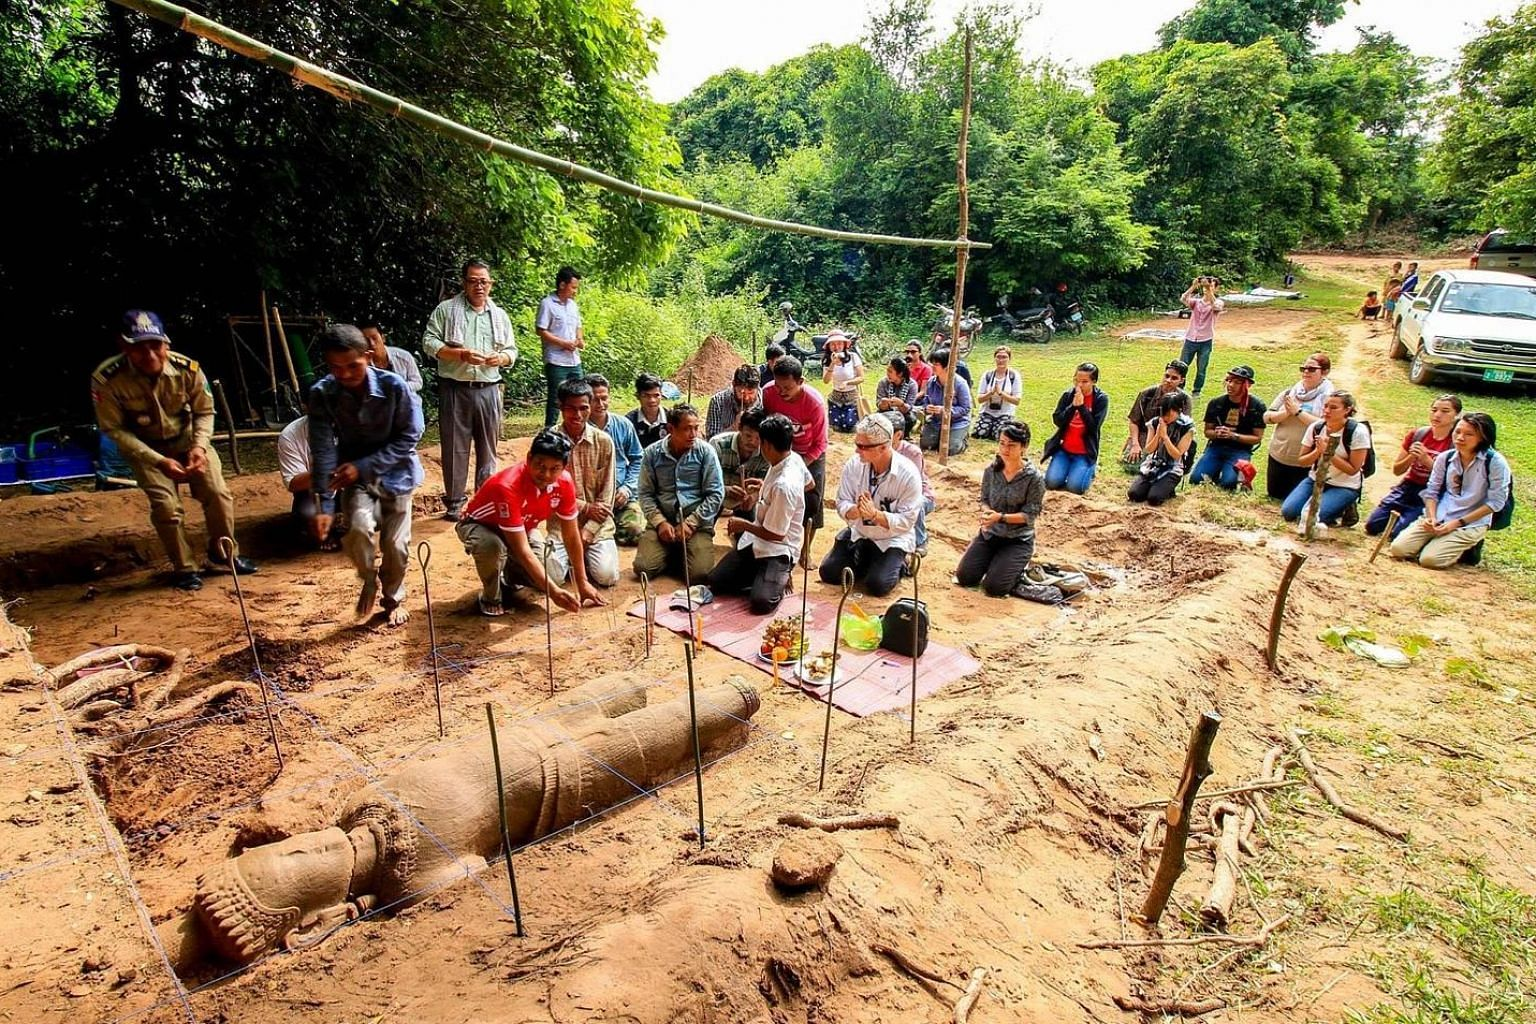 The field team from ISEAS - Yusof Ishak Institute's Nalanda- Sriwijaya Centre, led by Dr Kyle Latinis, with members of other teams at the site of the dig. Buried in a pit about 40cm deep, the approximately 2m-tall sandstone statue, sculpted in the im